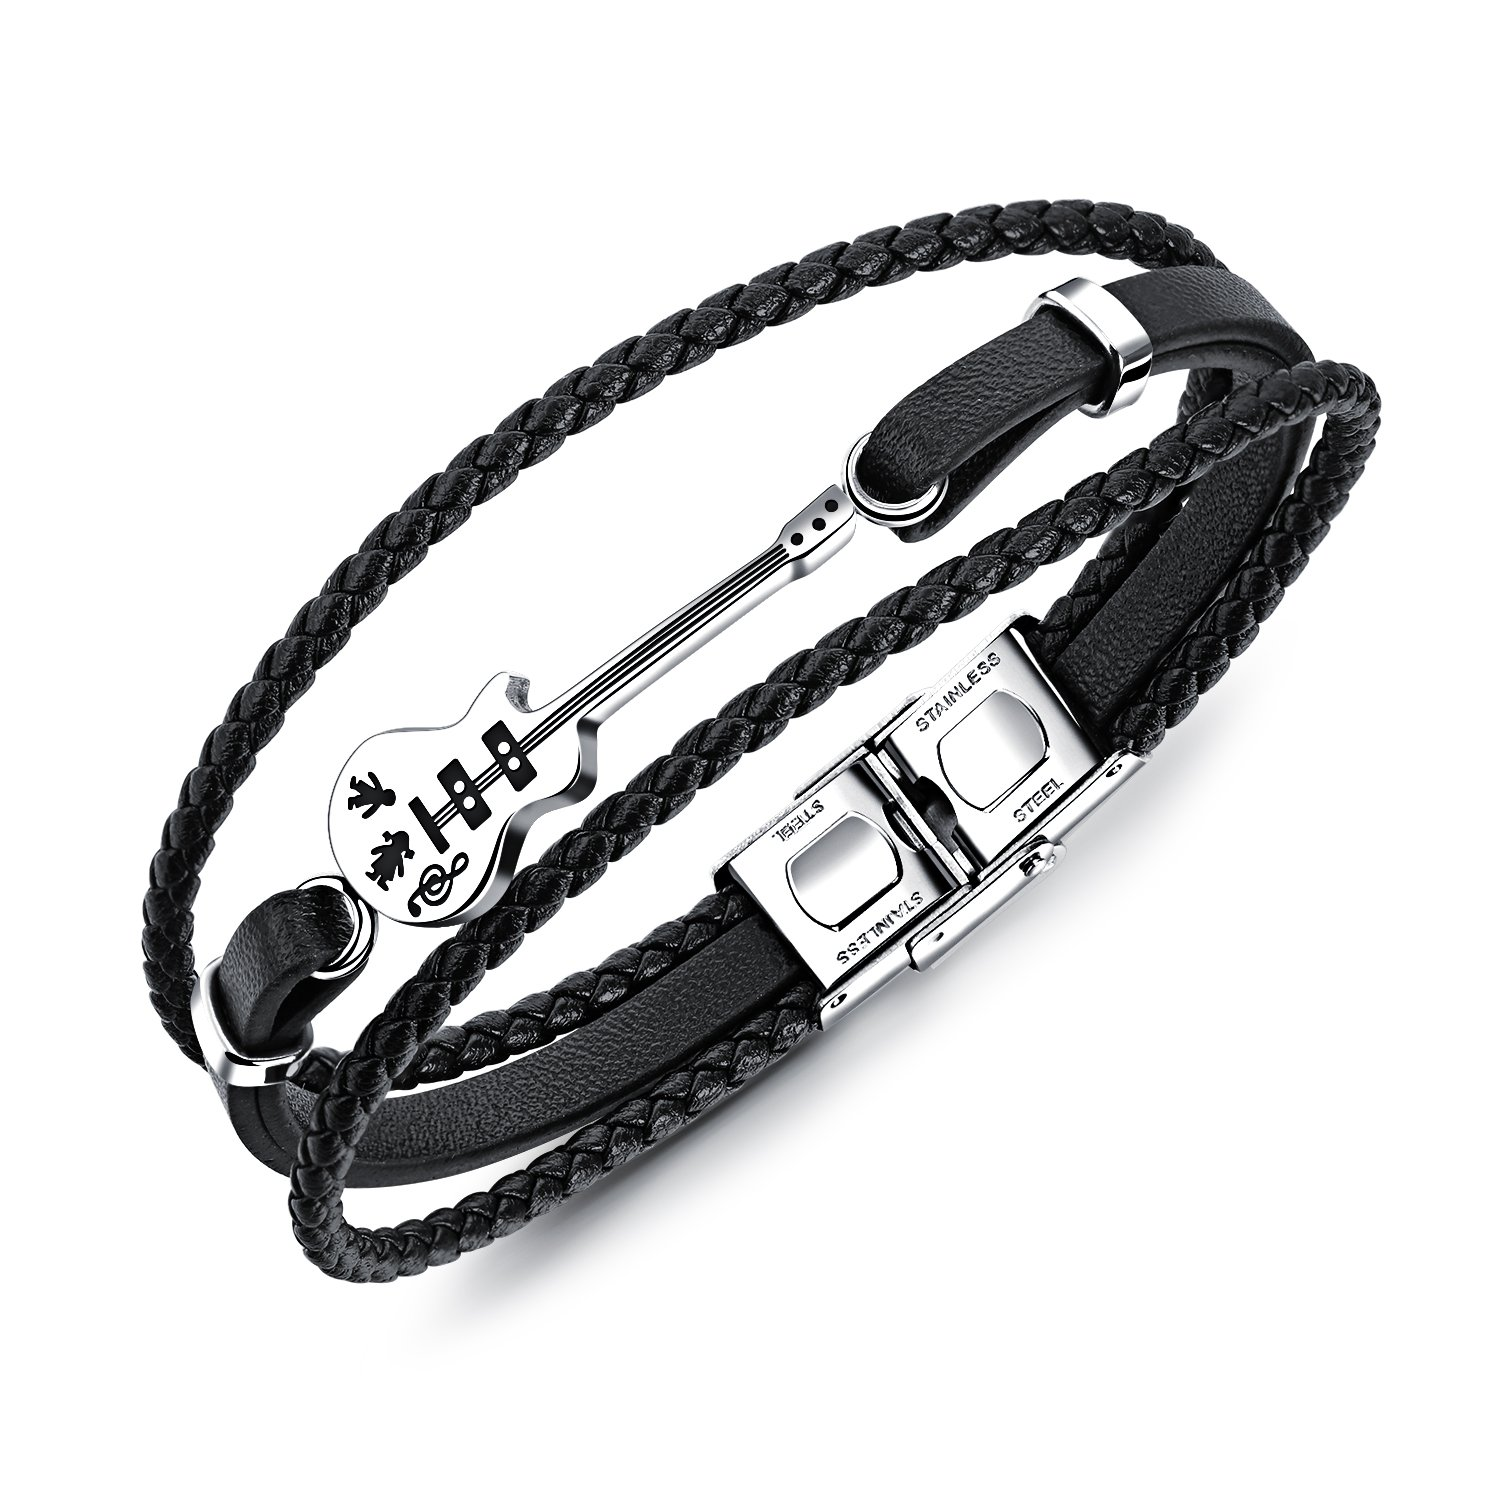 BONFASH Leather Bracelets for Men Women Unisex Rope Link Bracelets Stainless Steel Adjustable Black/Brown